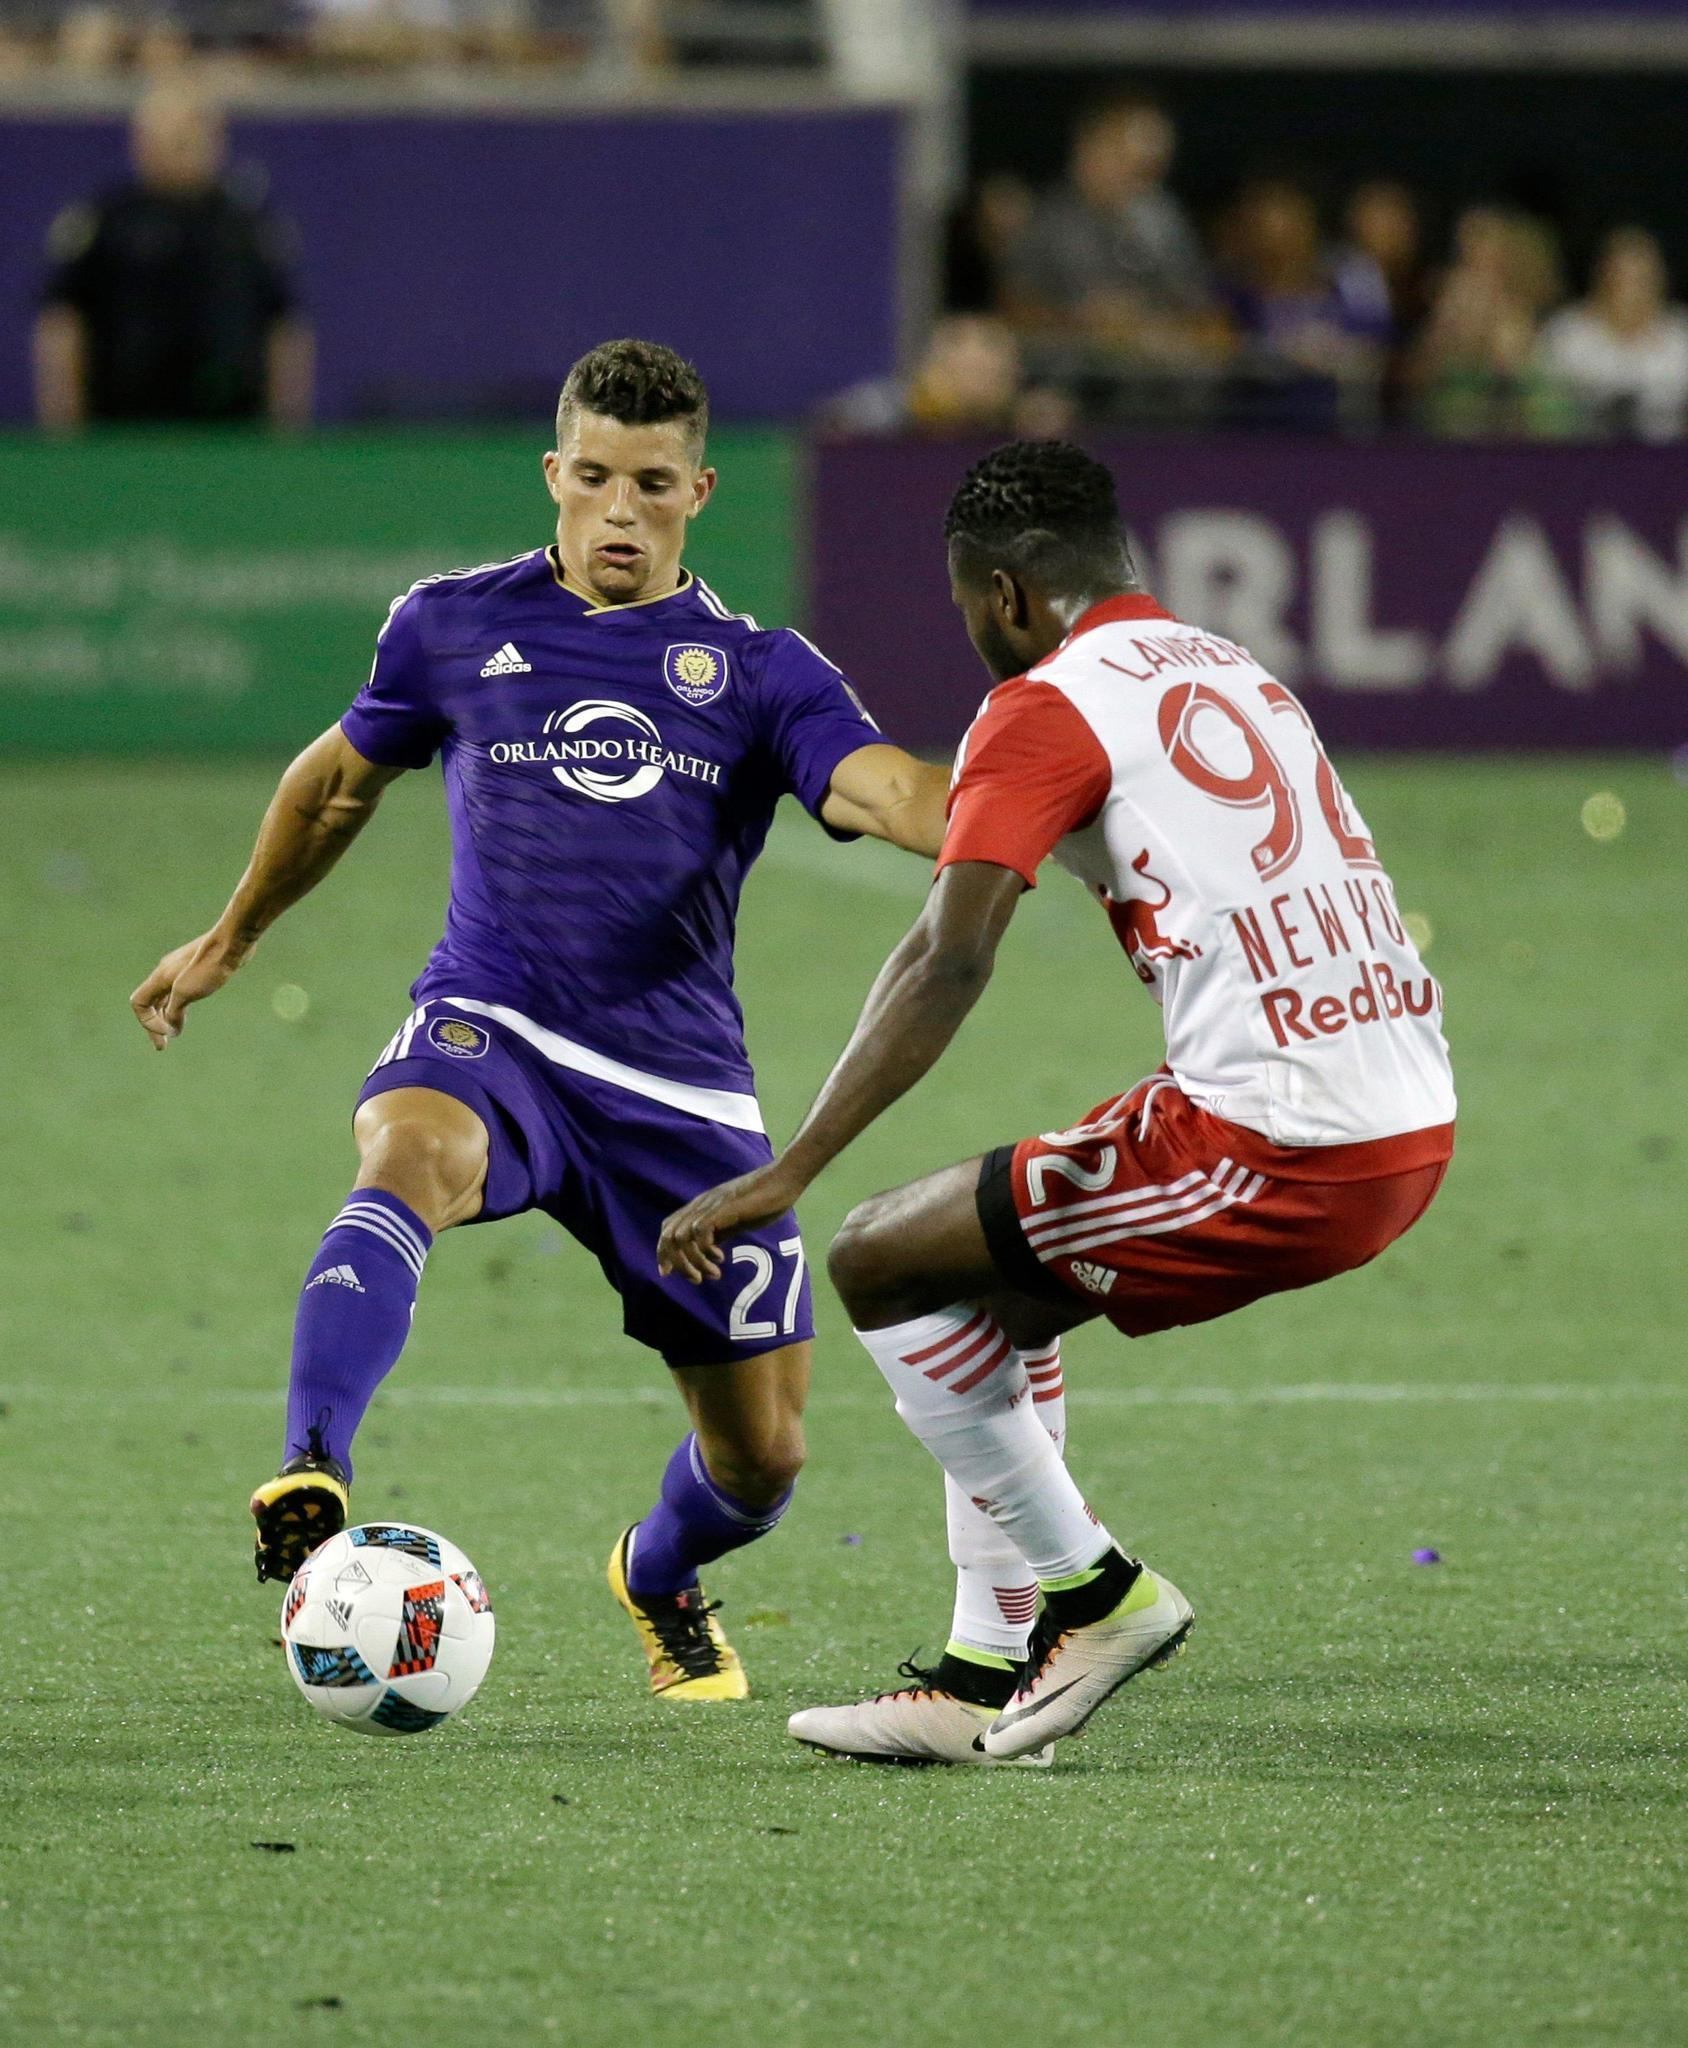 Os-sp-orlando-city-defender-rafael-ramos-out-six-weeks-with-hamstring-injuries-20170222